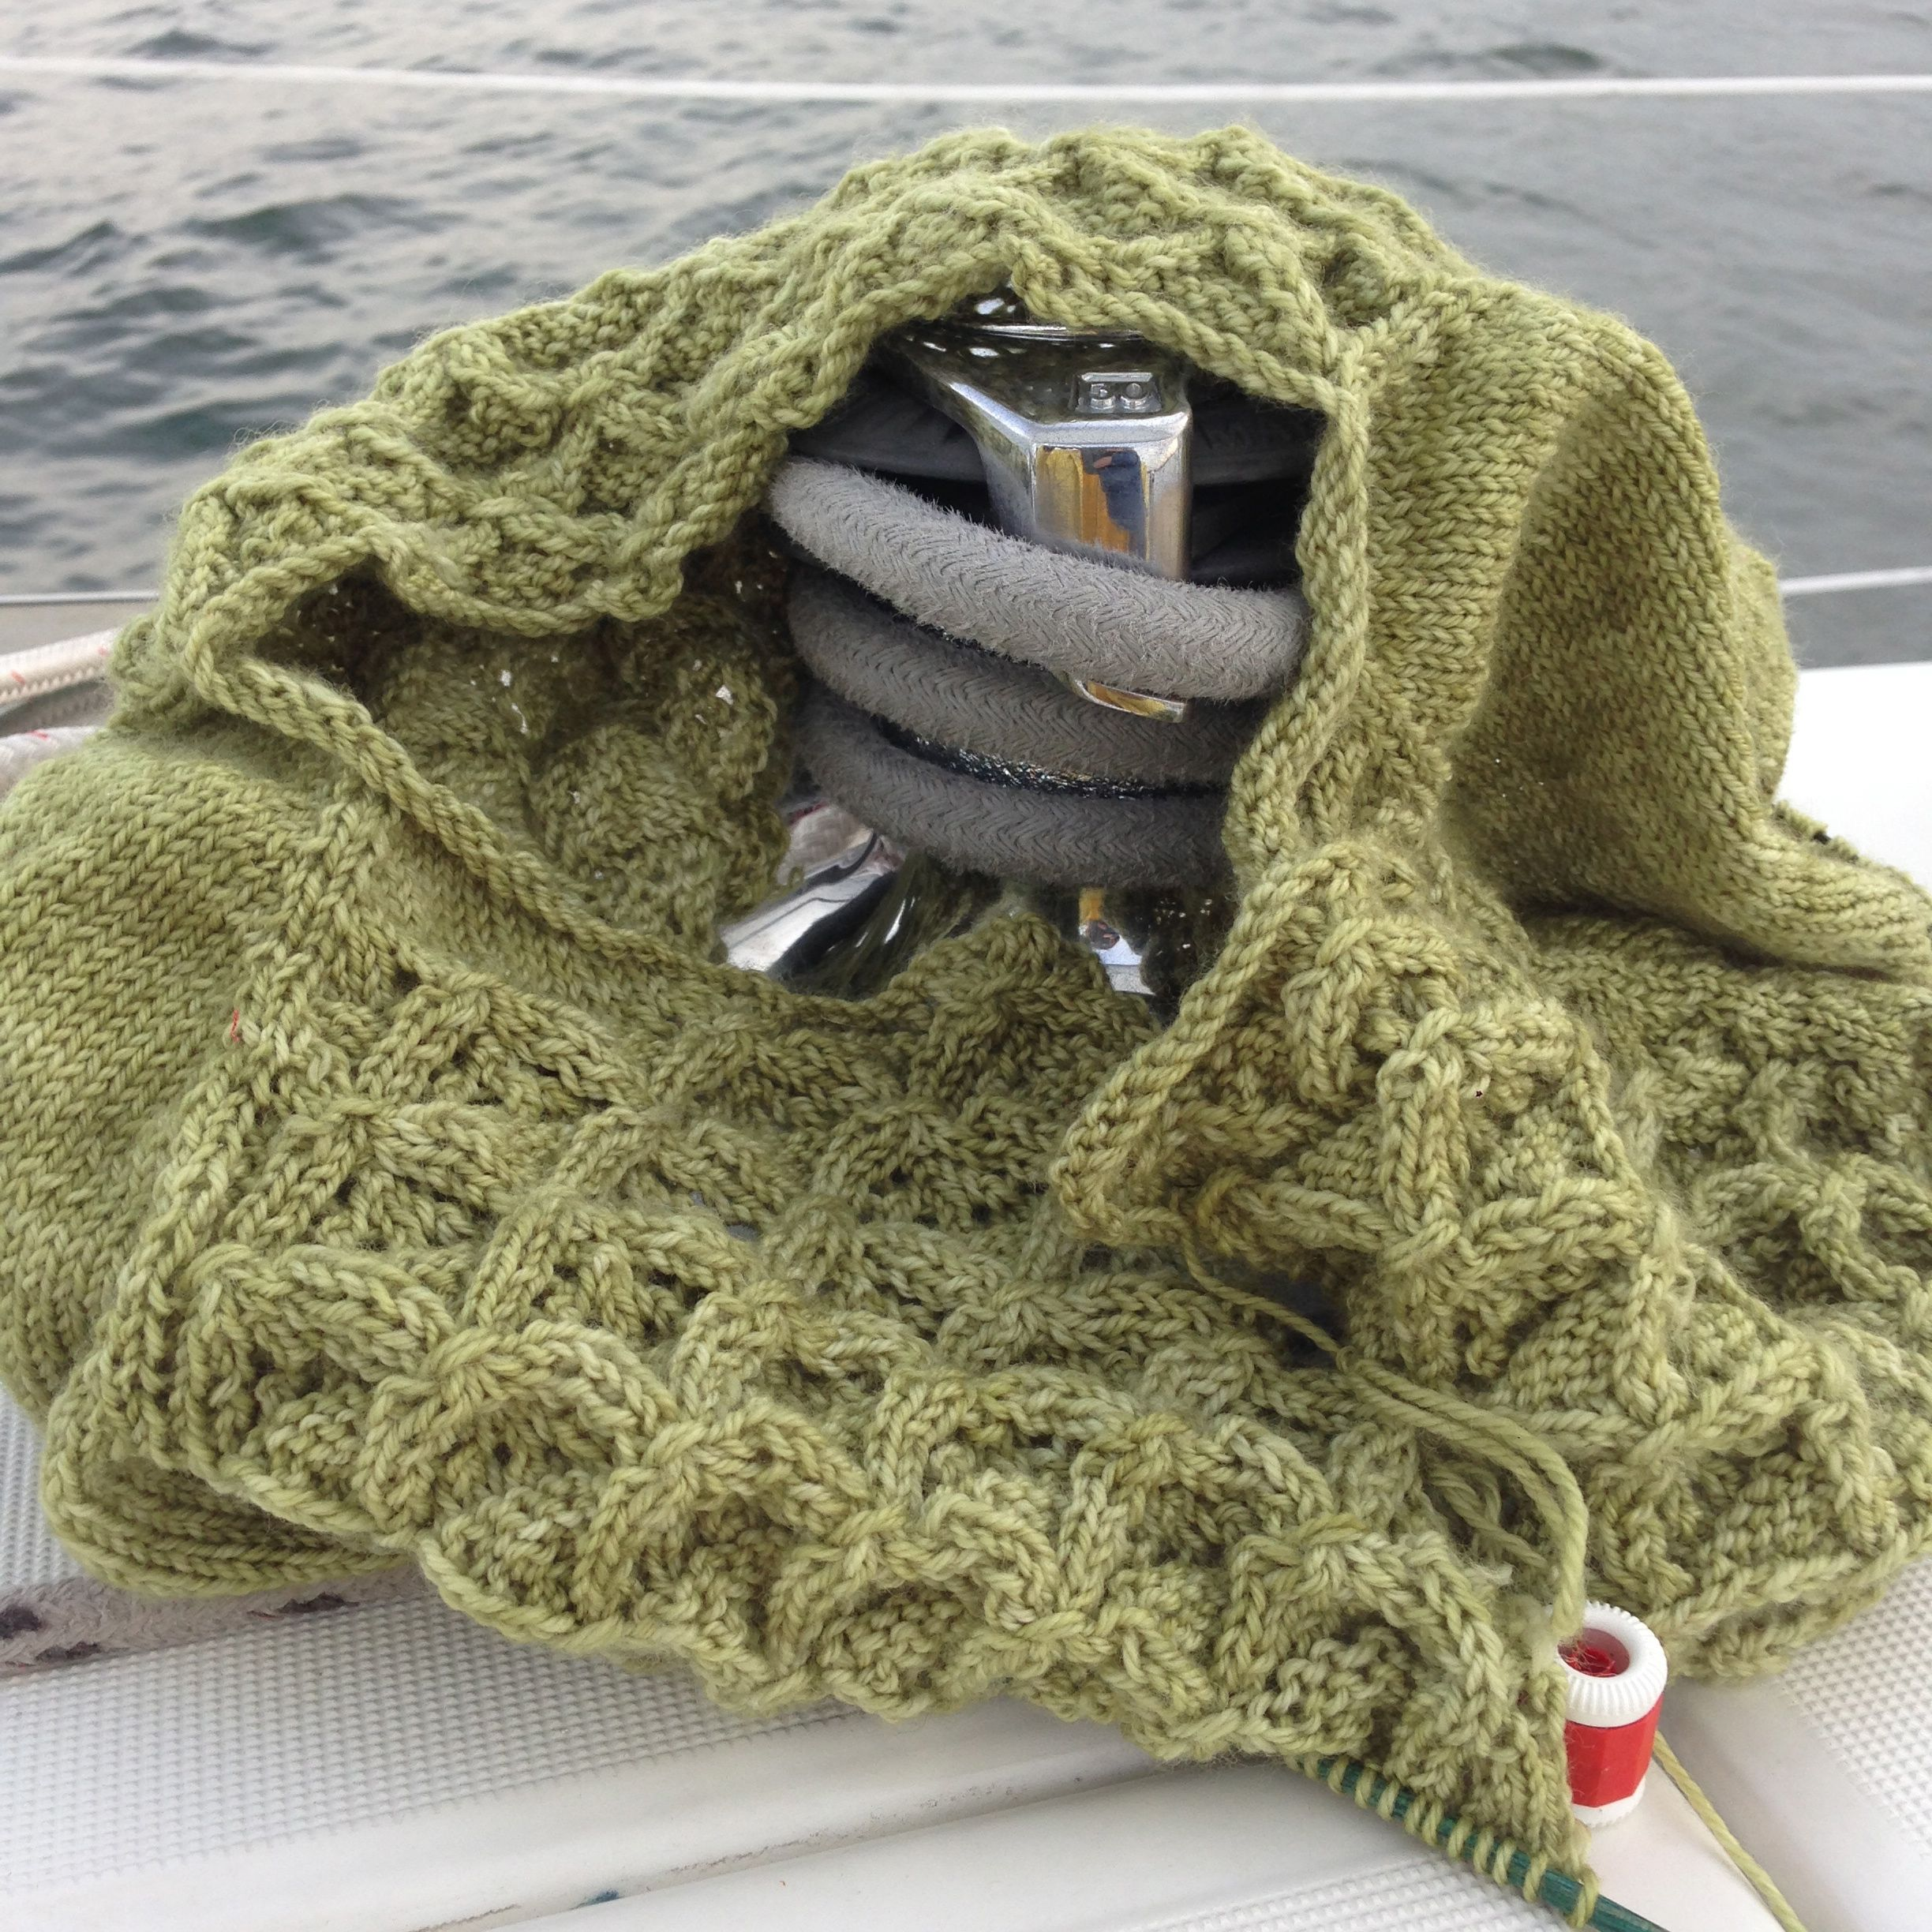 Easy Knitting for Summer Travels